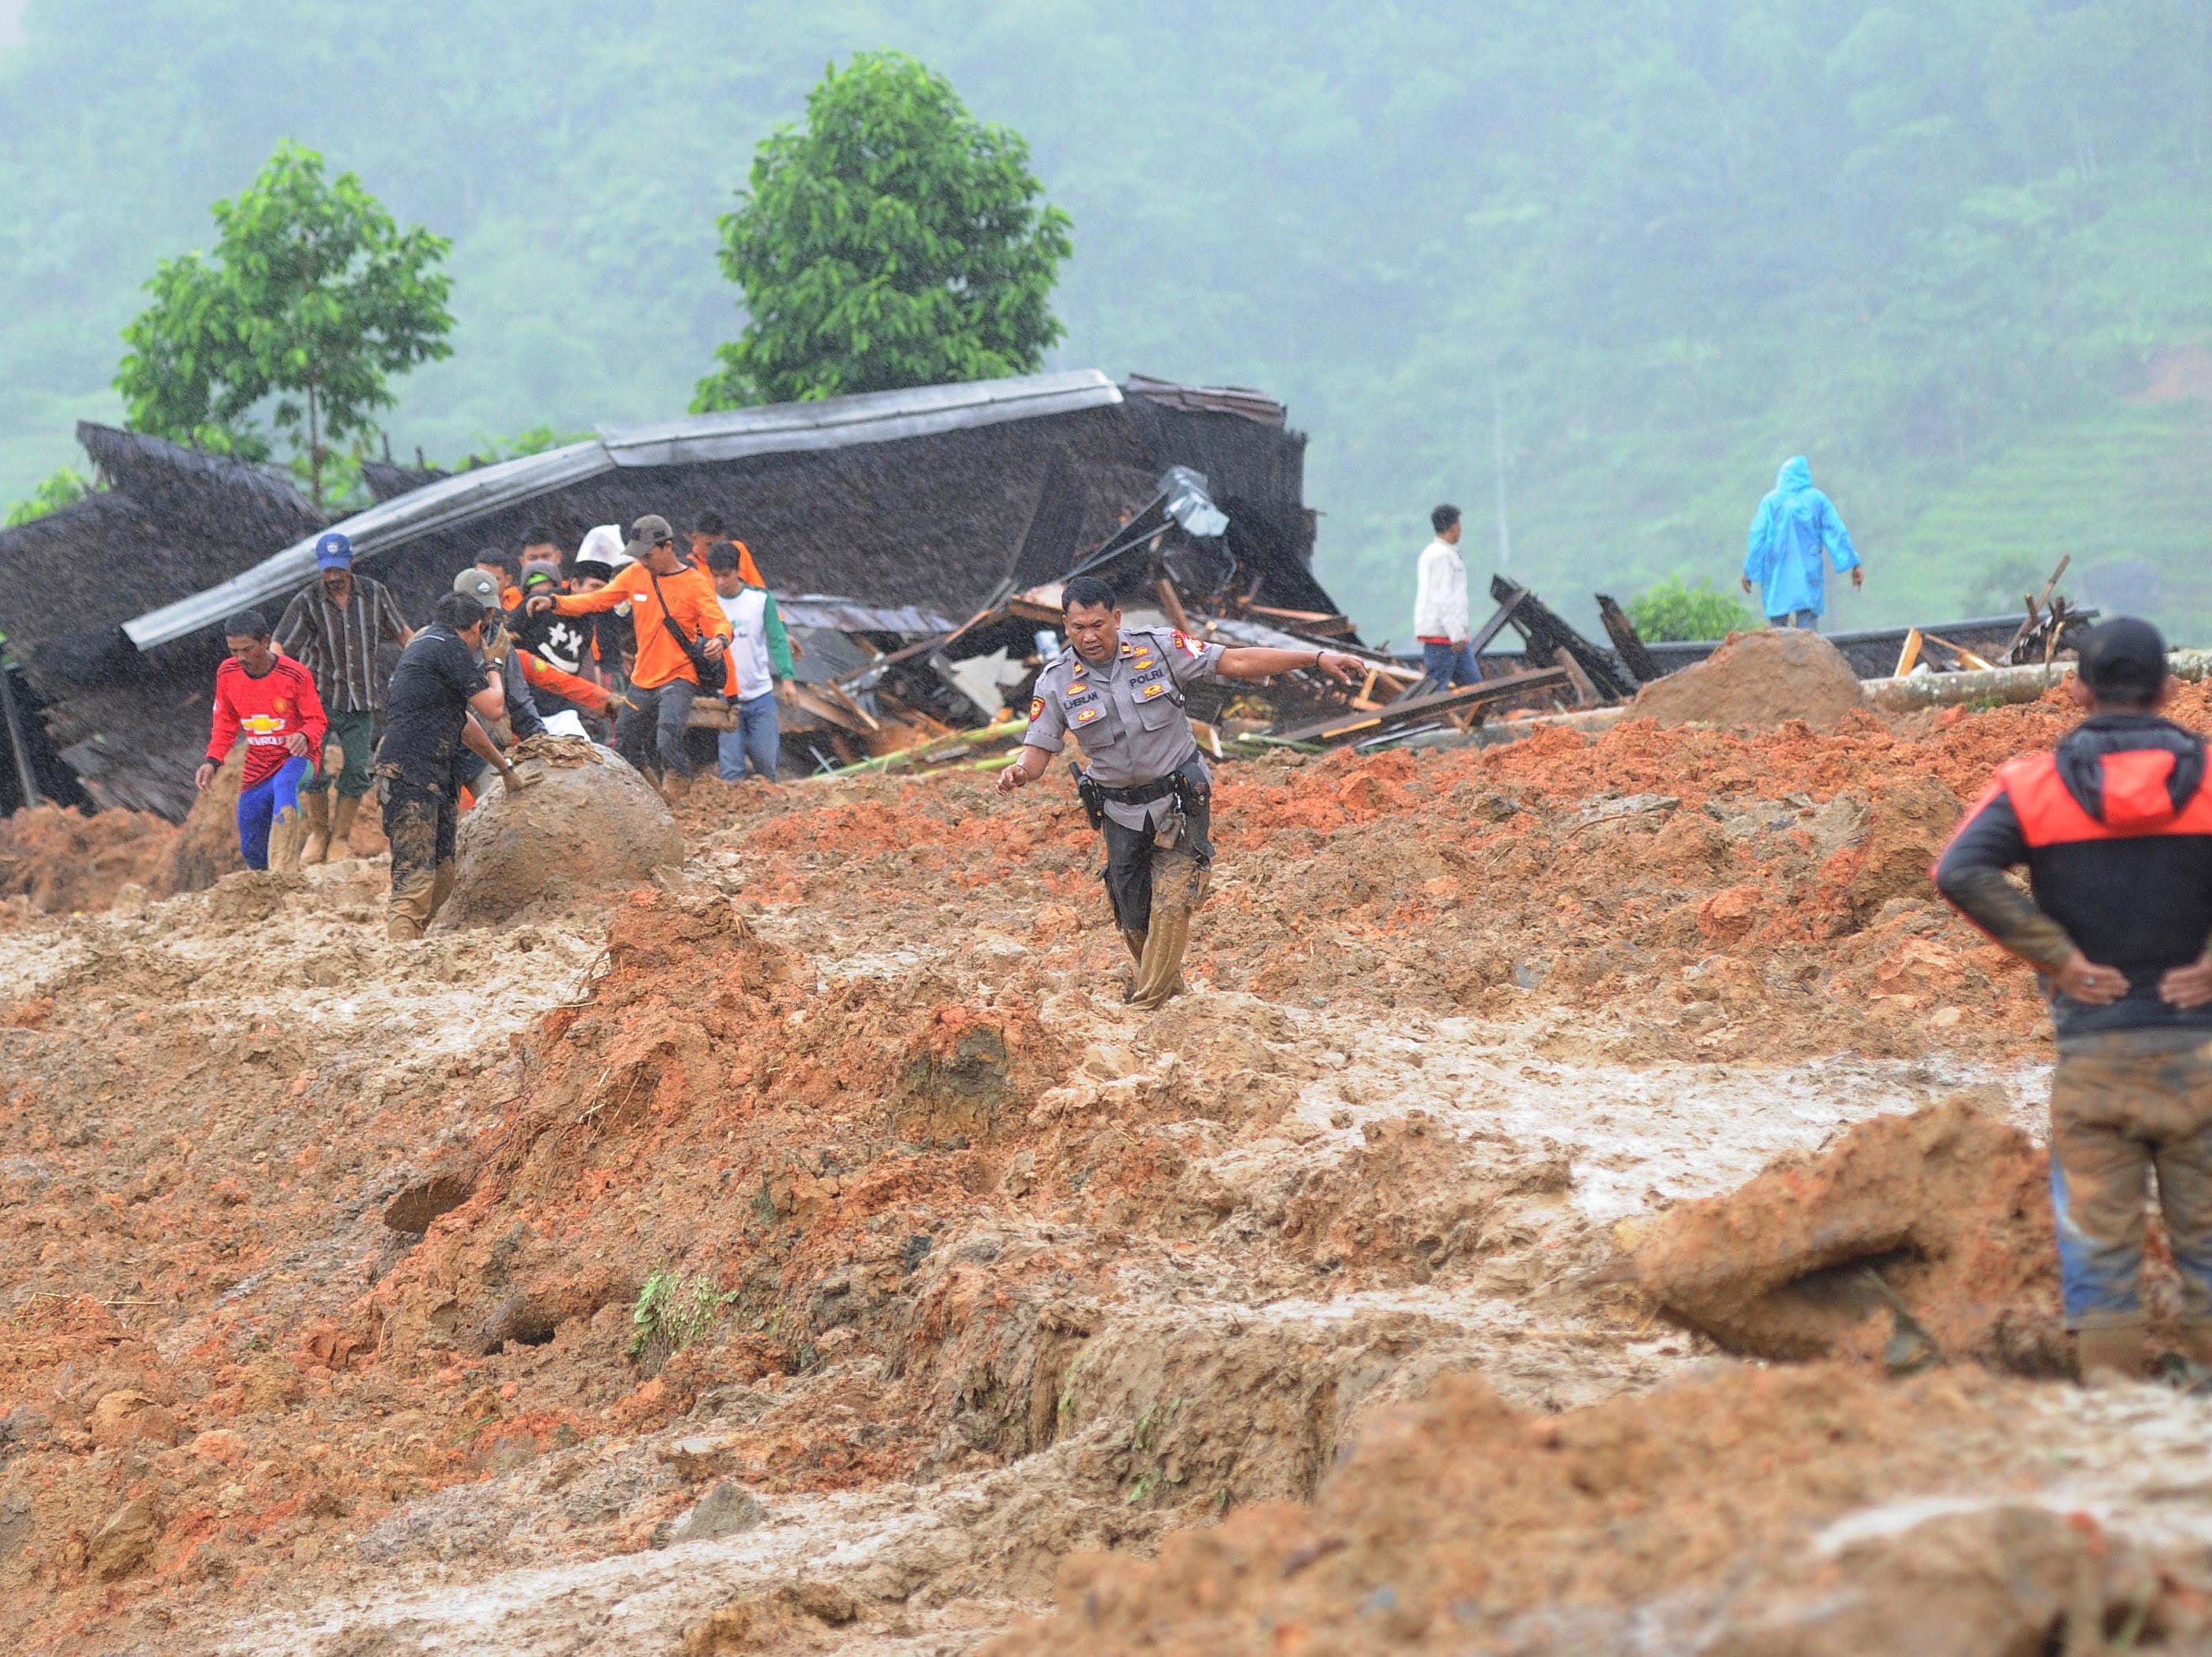 Indonesian villagers and rescuers search for landslide victims at Sirnaresmi village in Sukabumi, Indonesia on Jan. 1, 2019.